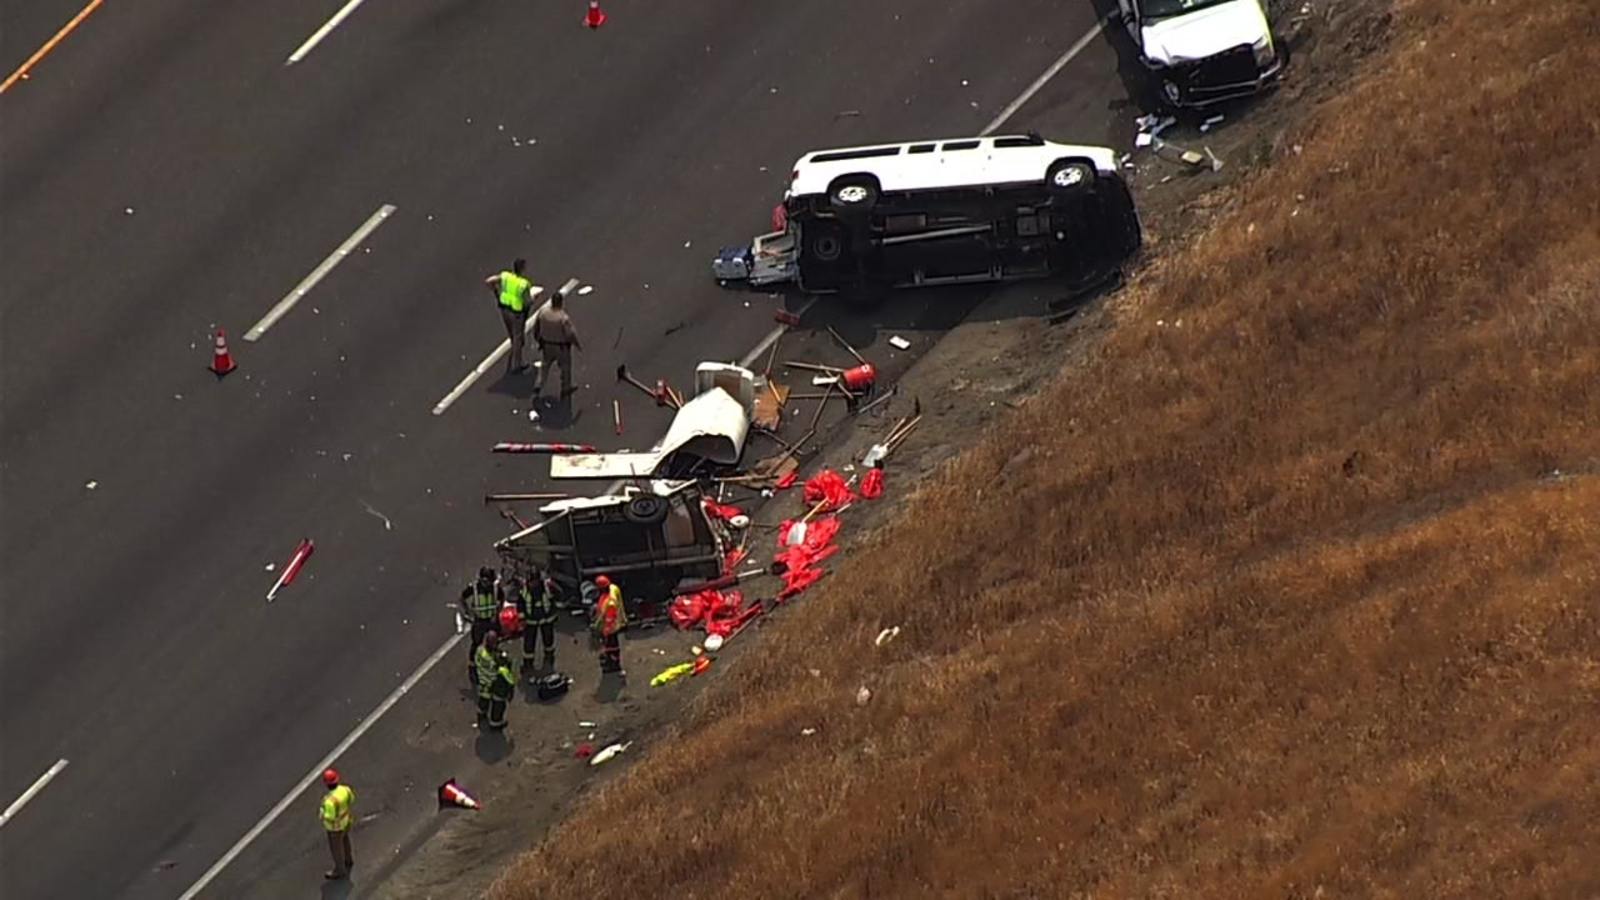 Caltrans workers hurt in I-80 crash in Fairfield near where CHP officer was  killed